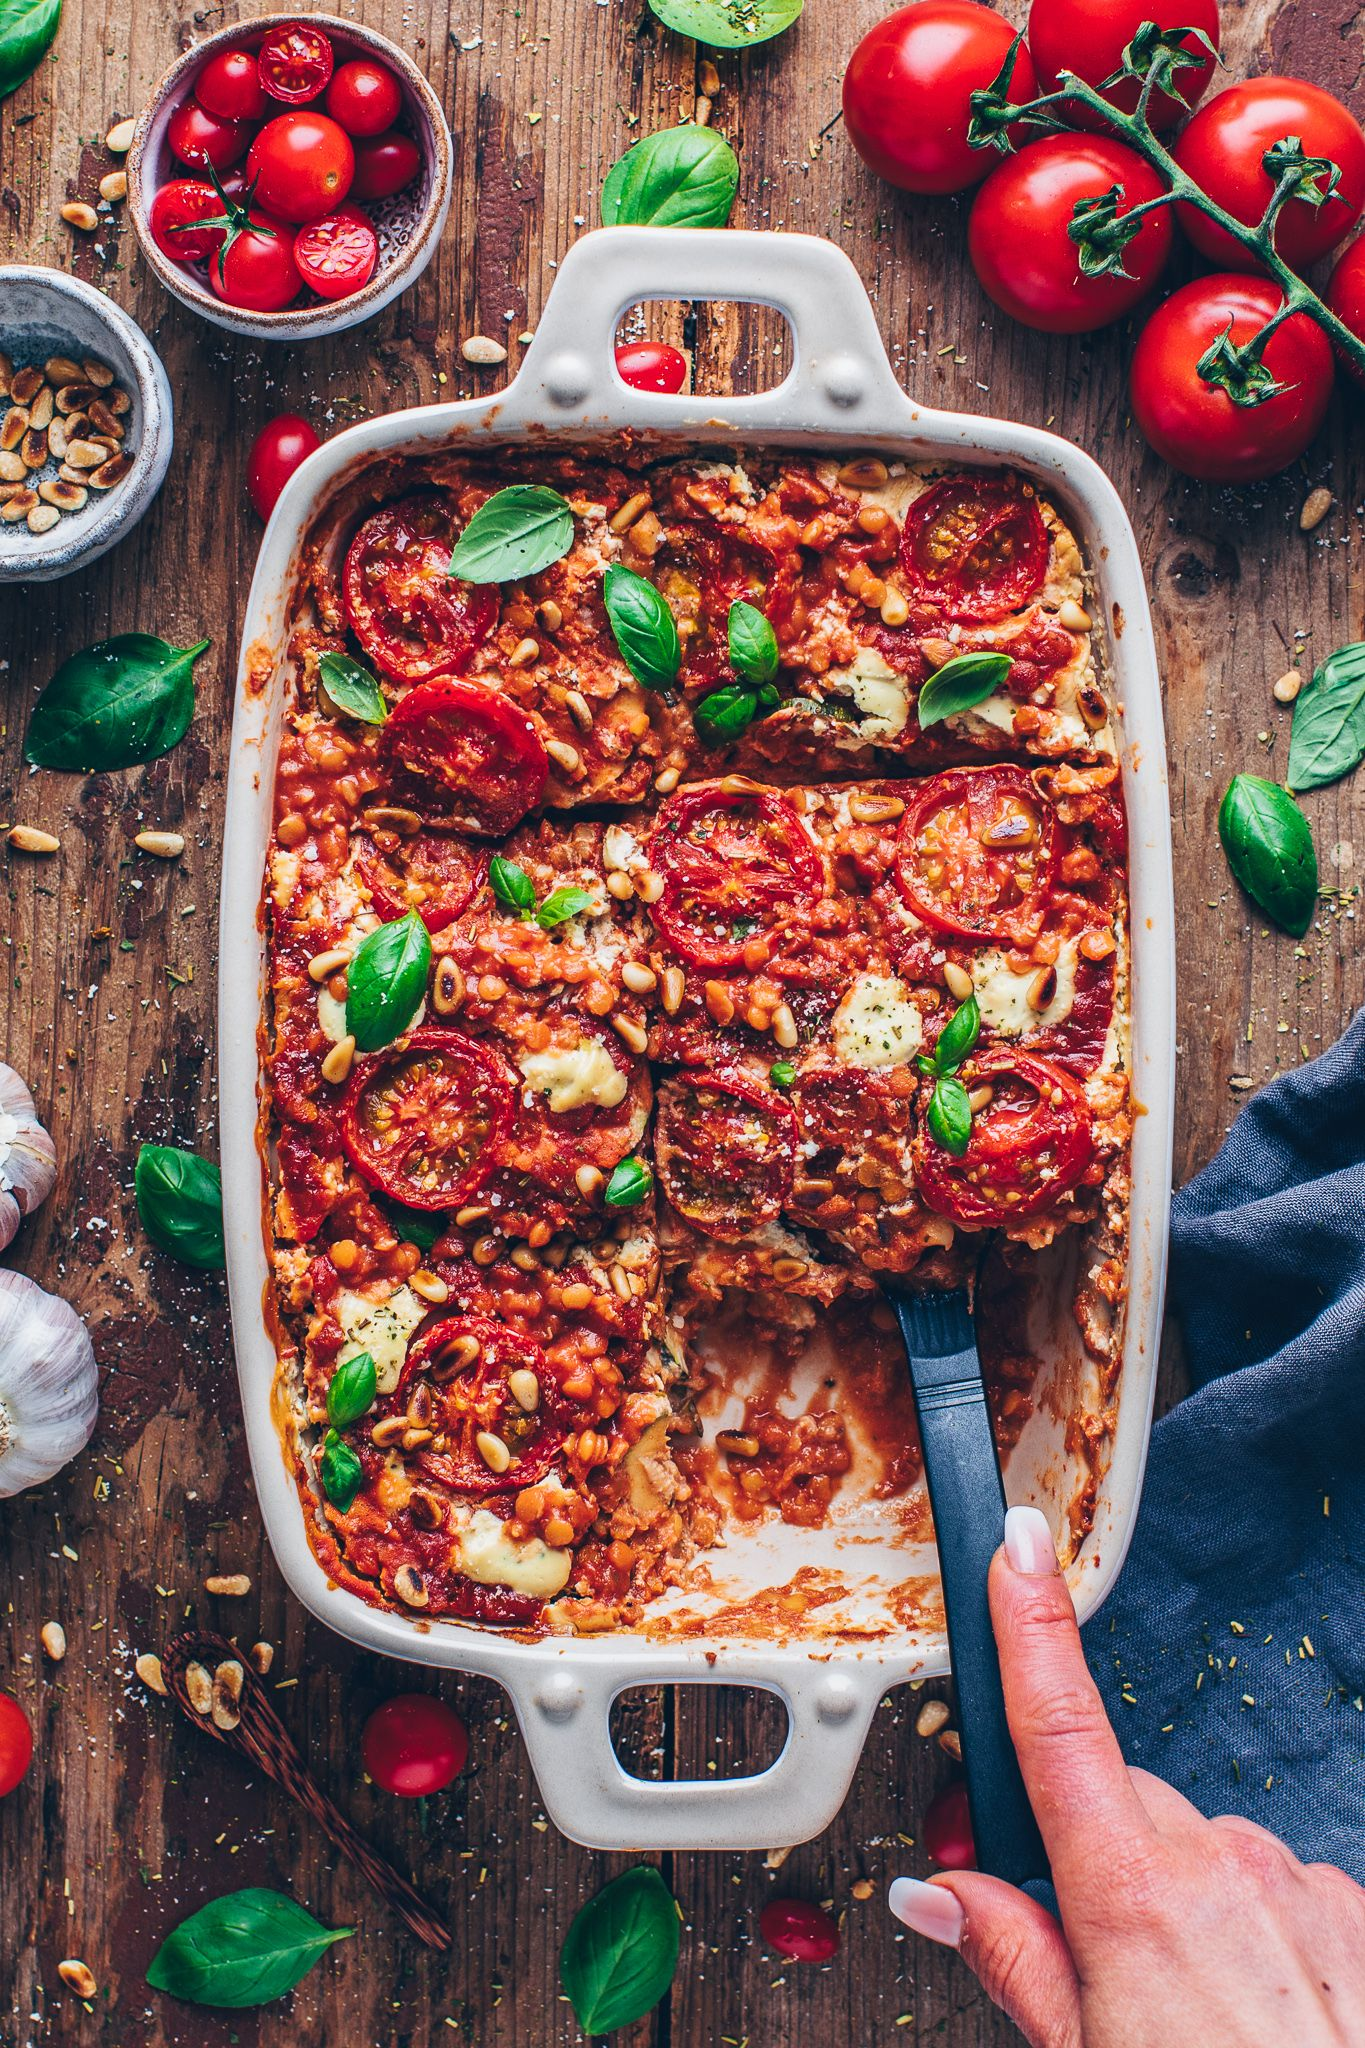 Vegan Lasagna with Lentils and Zucchini